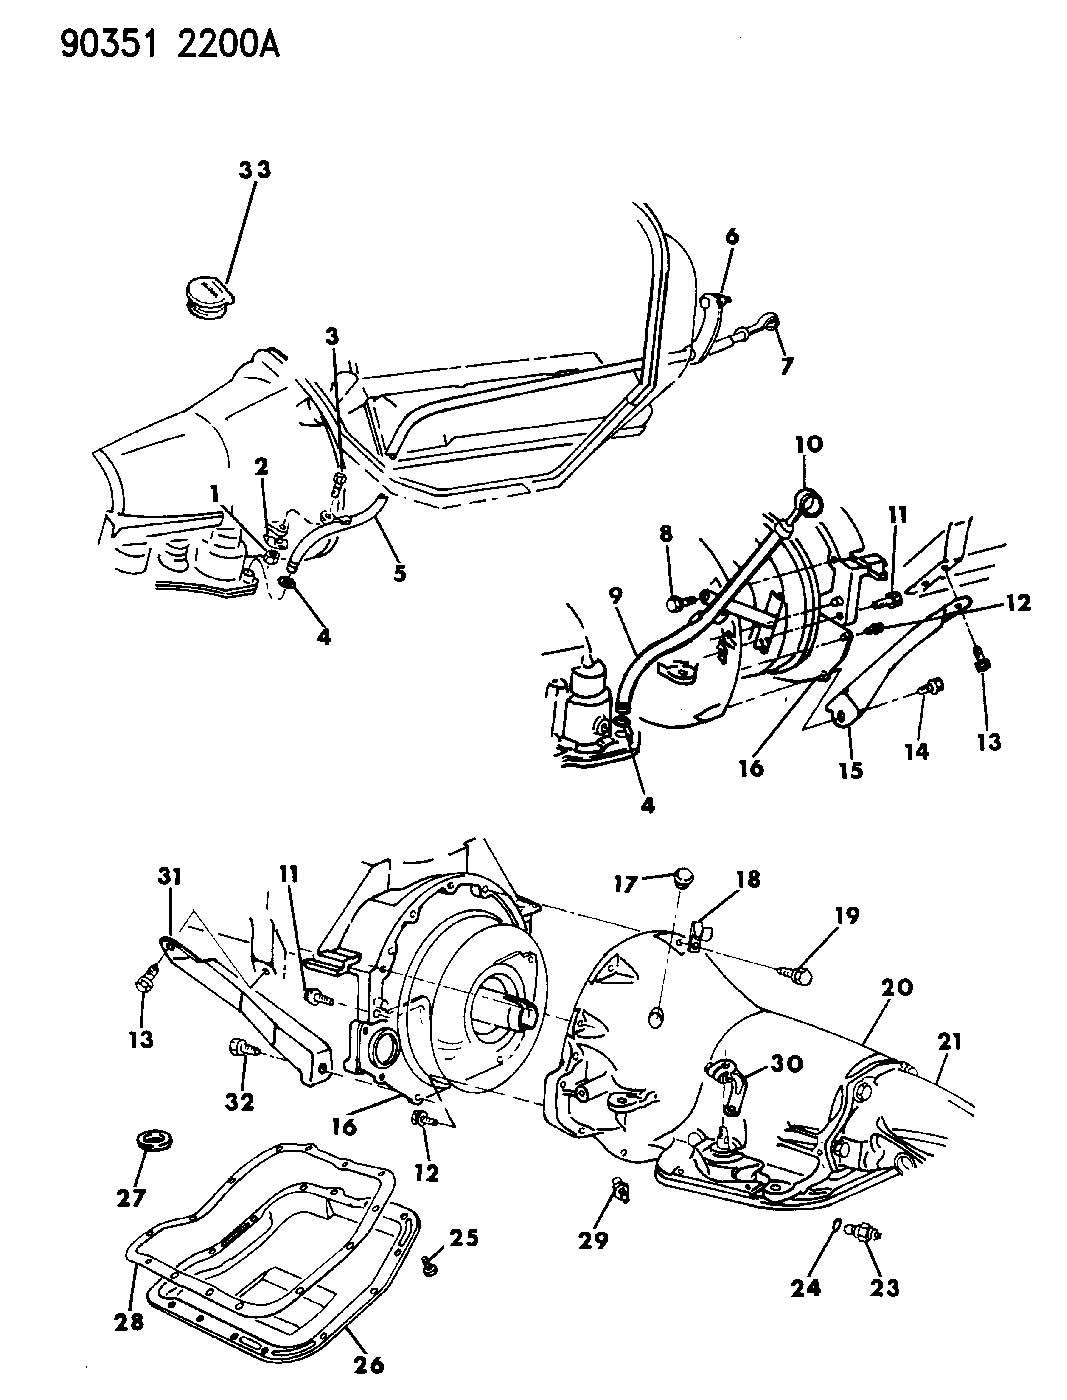 6iit5 Jeep Cherokee Limited 1998 Jeep Cherokee 4wd 4 0l6 4speed besides 2qu1q Replace Master Cylinder Abs 85 Lincoln Mark 7 further Jeep Oem Parts Diagram Manual Transmission Html further Bronco also Thread TPS Location. on jeep wrangler front brakes replacement